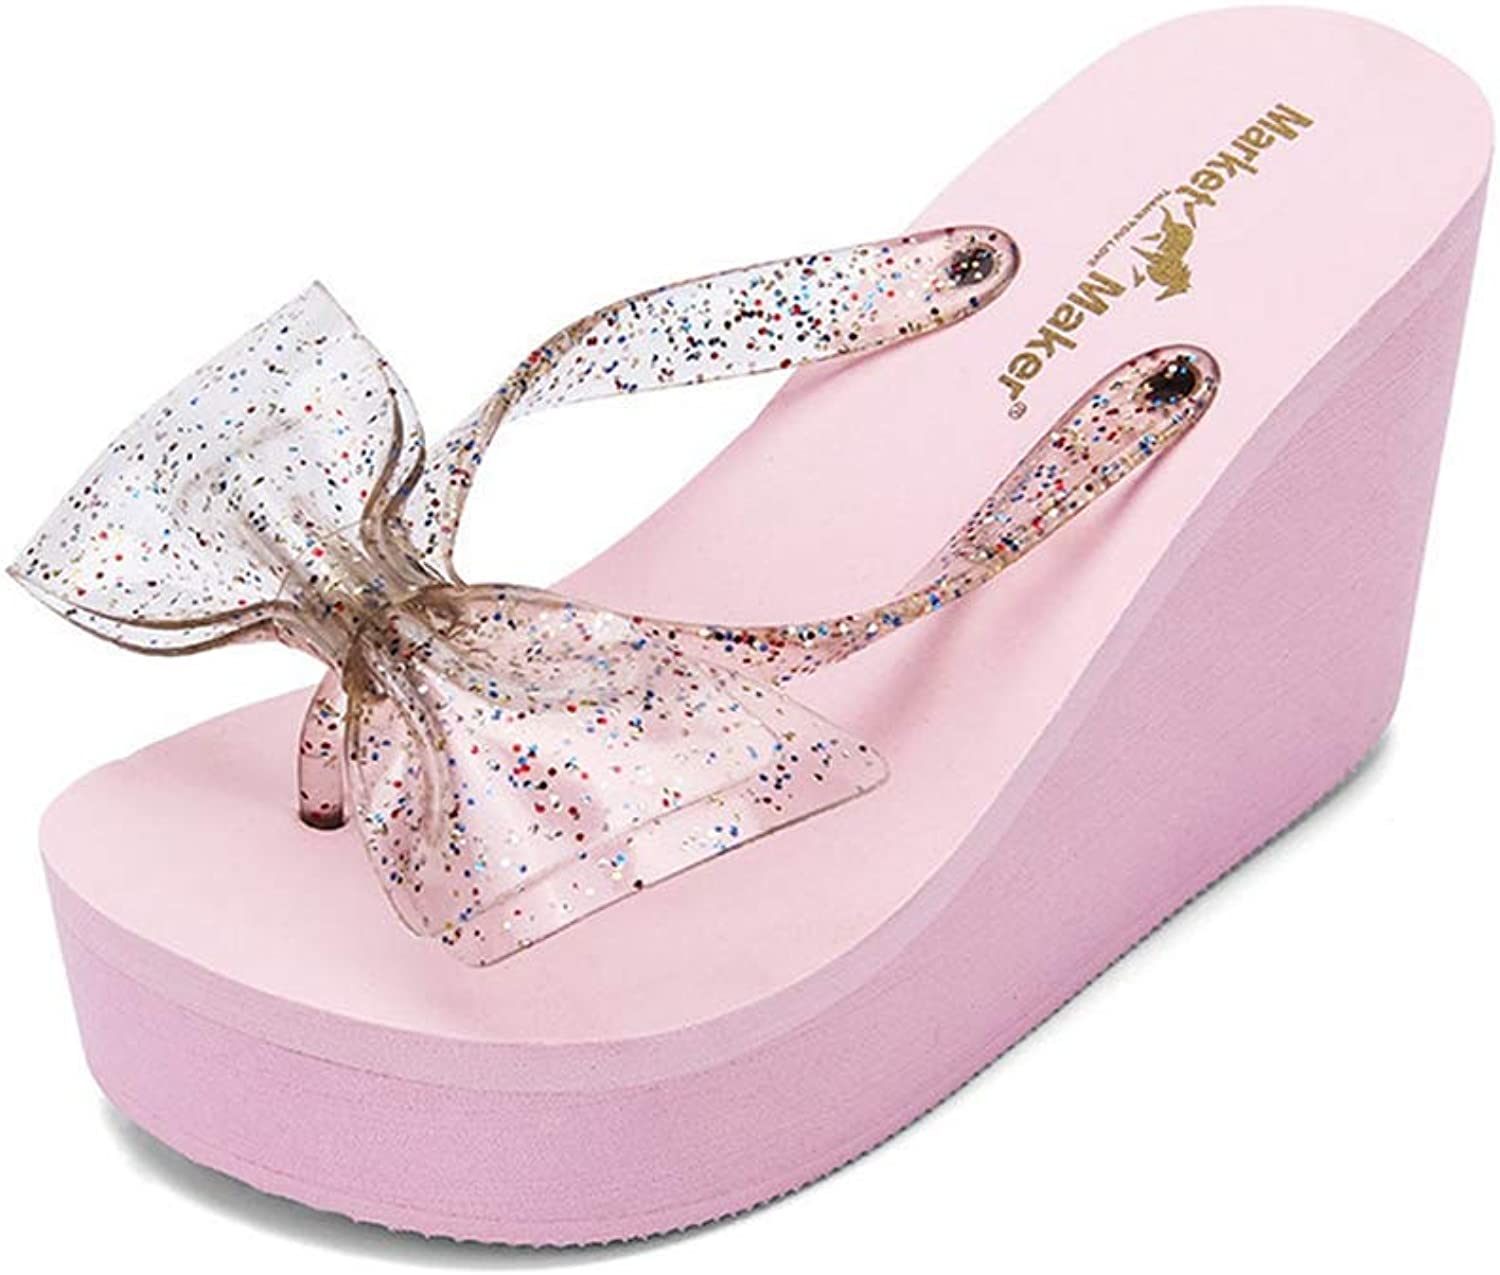 T-JULY Fashion Women Flip Flops with Bow Female Summer Beach Wedges Water-Resistant High-Heeled Slippers shoes